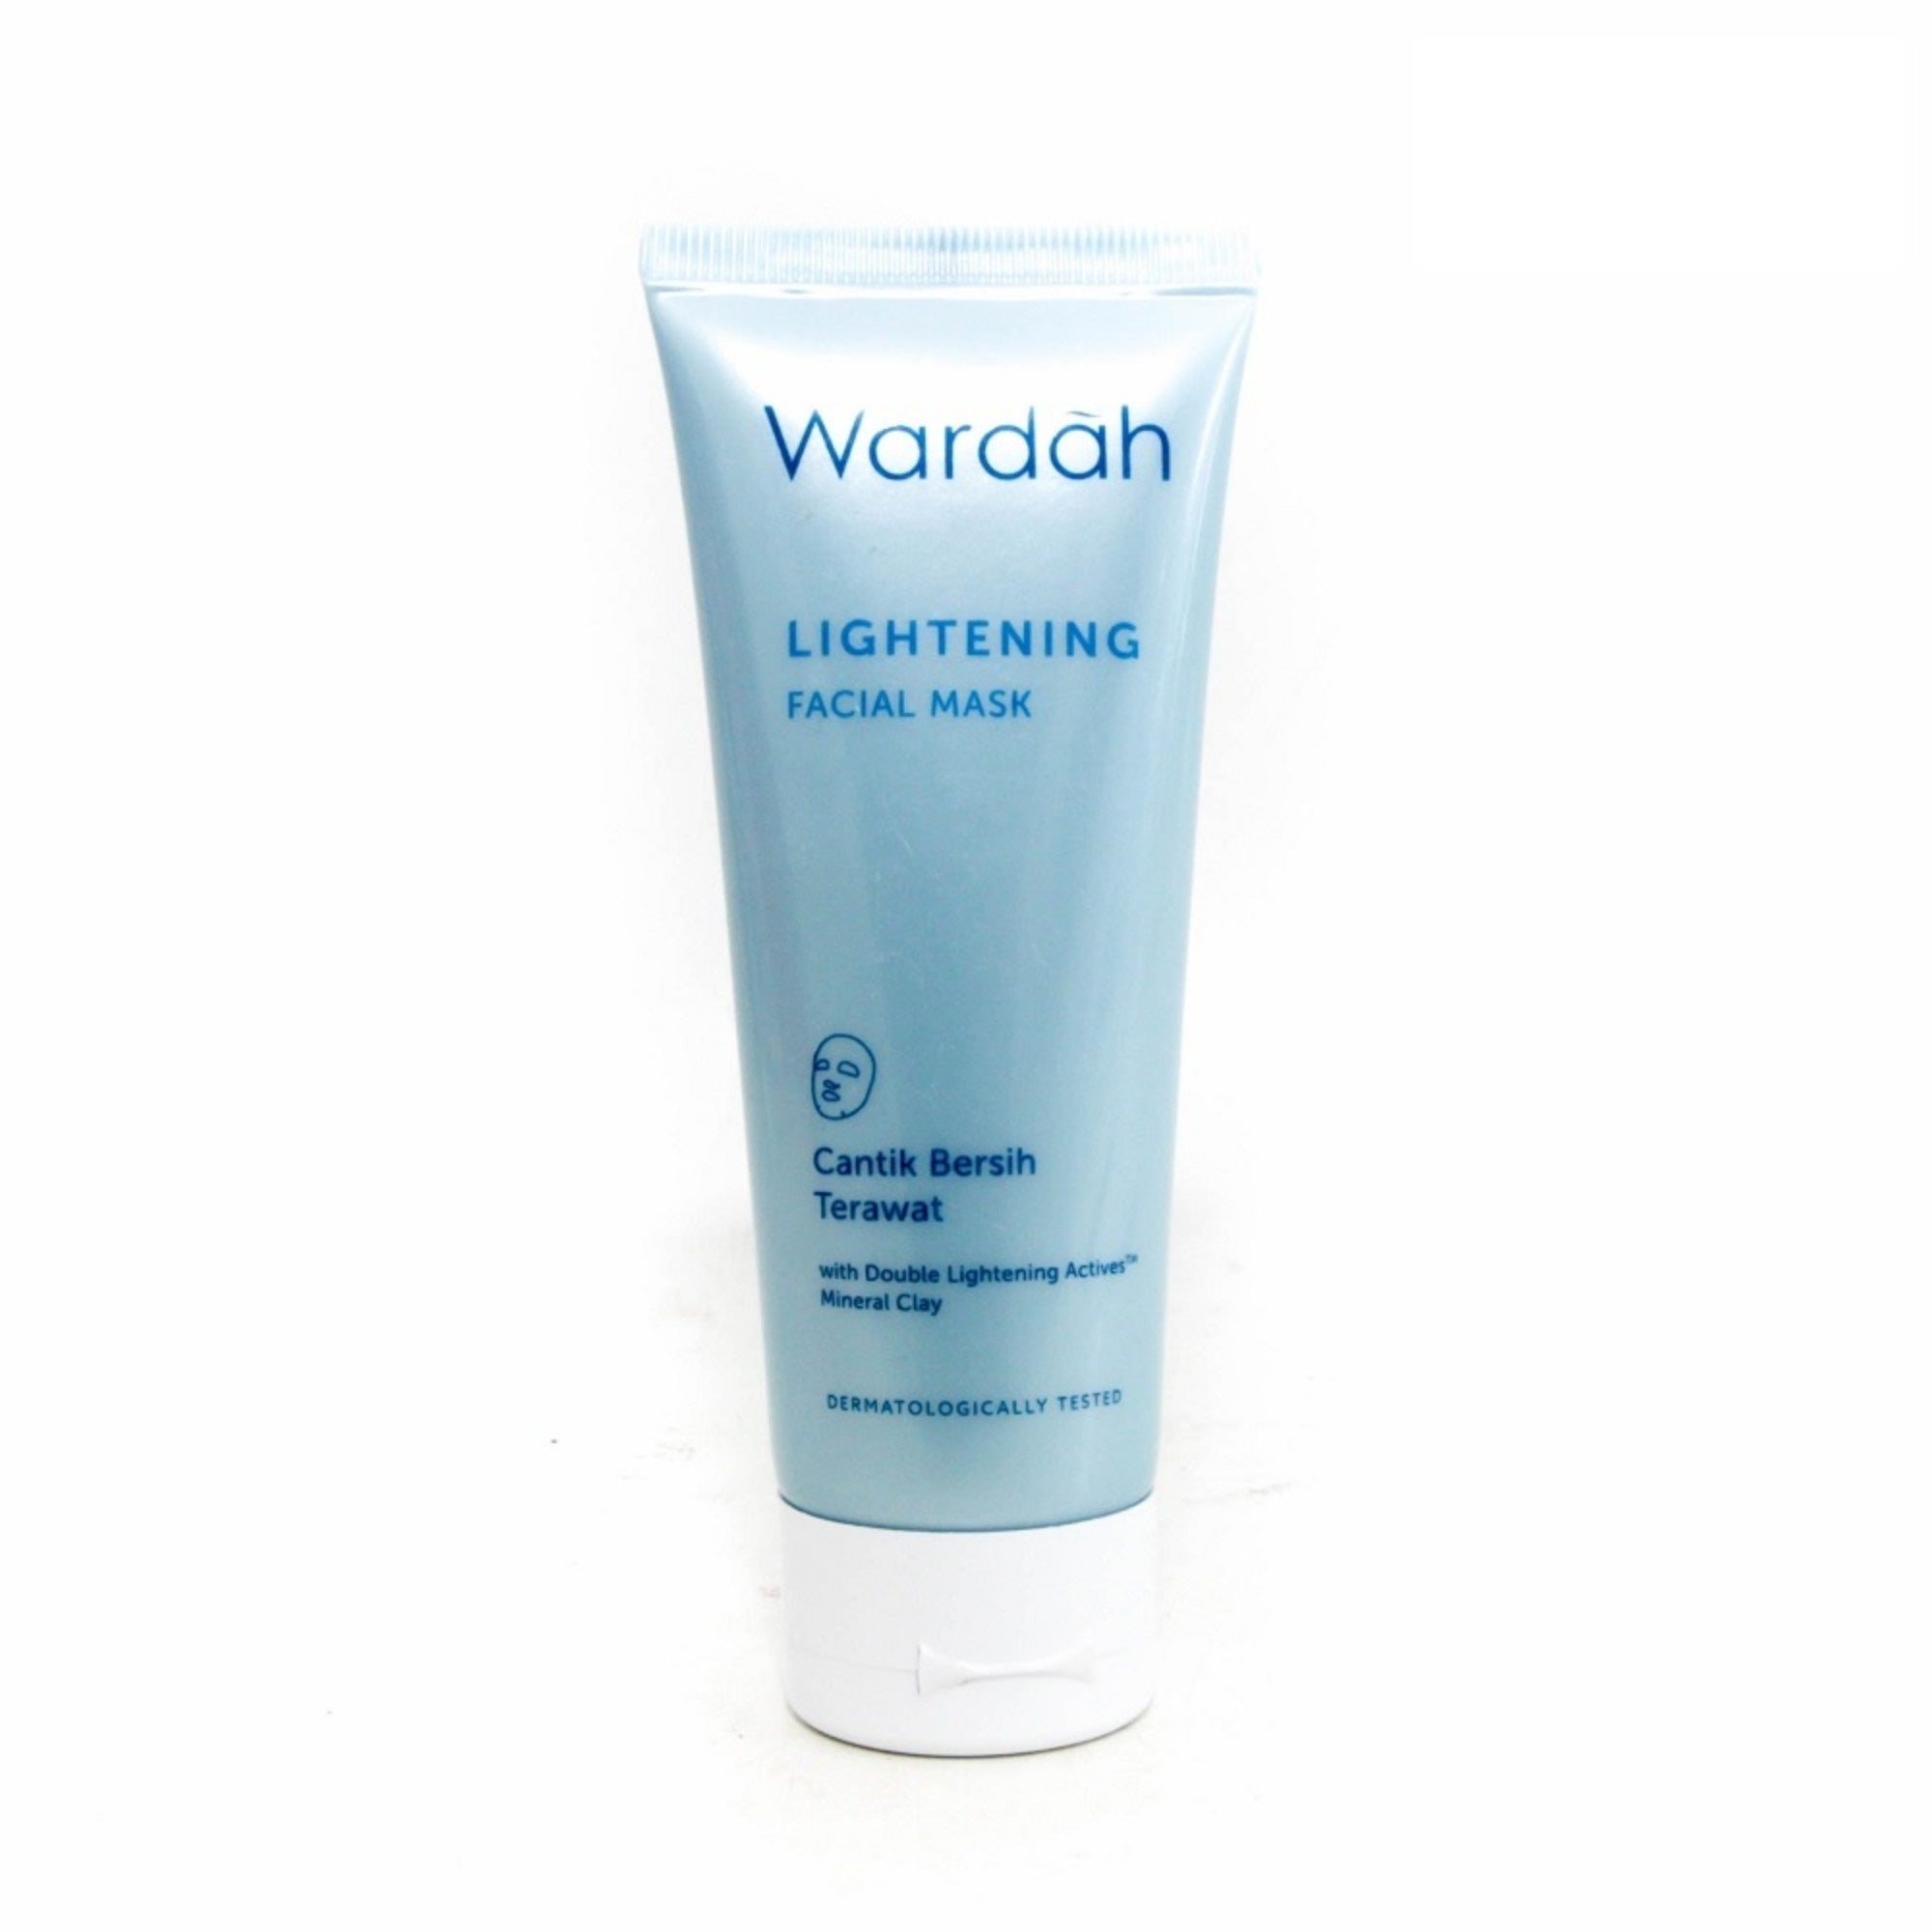 Wardah Lightening Facial Mask with Double Ligthening Actives 60ml